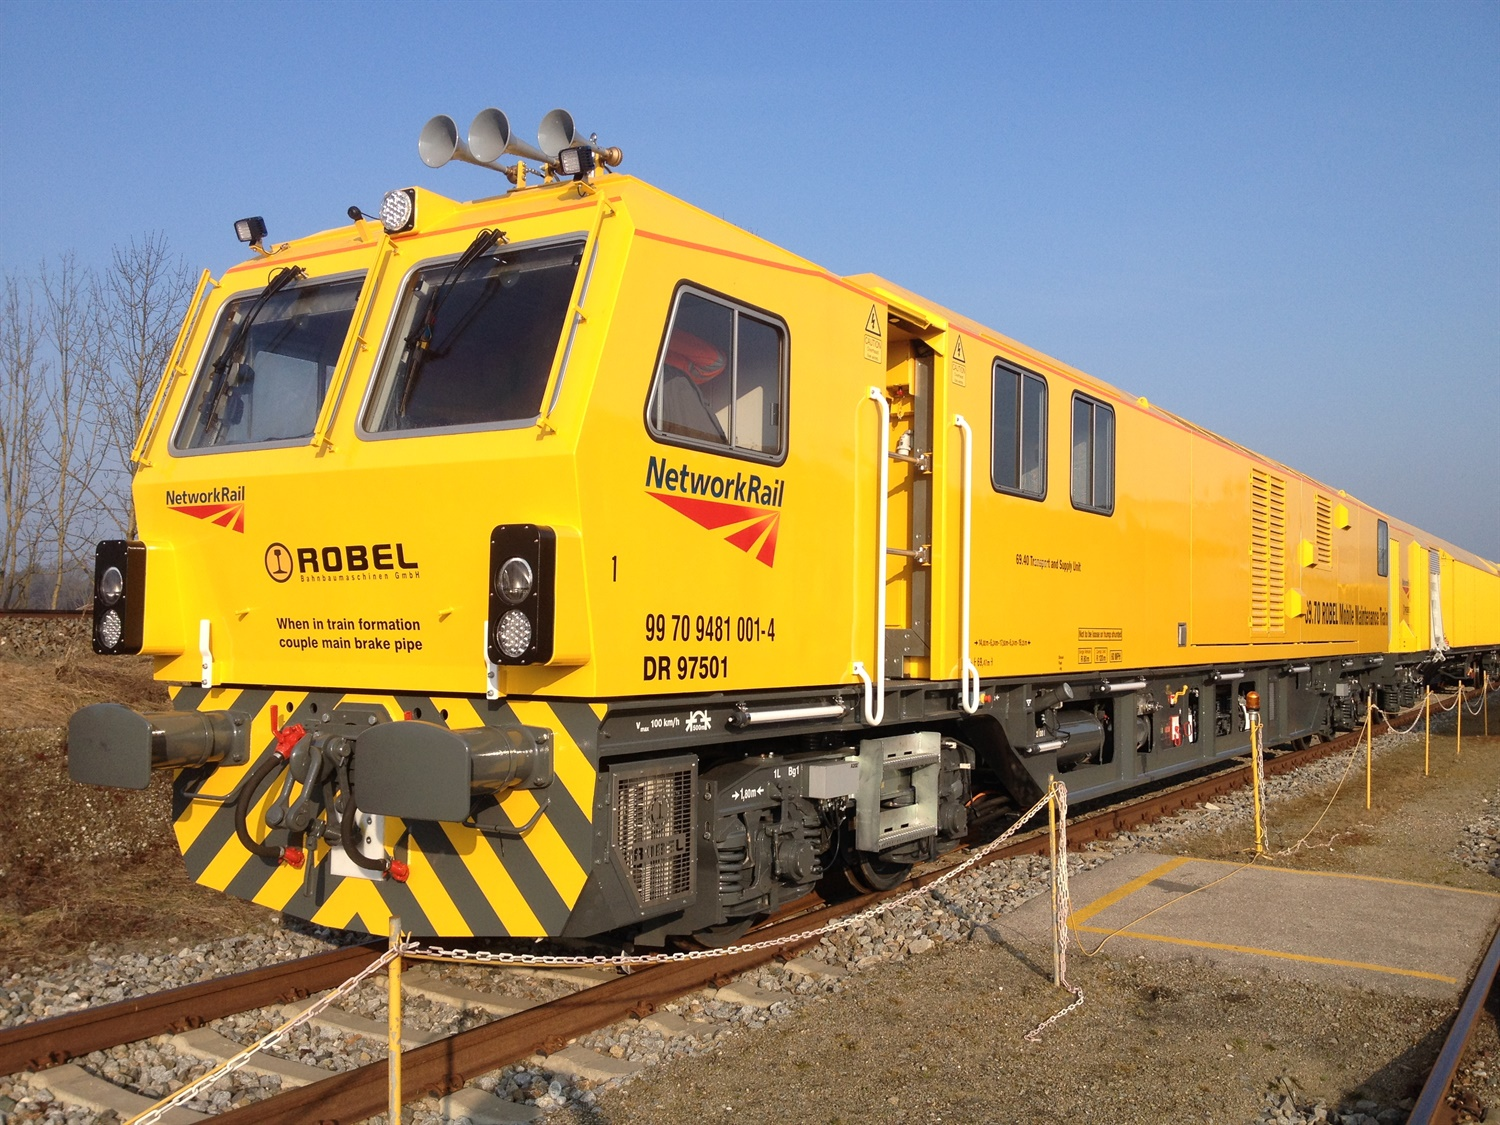 Network Rail's new mobile maintenance trains set to enter service